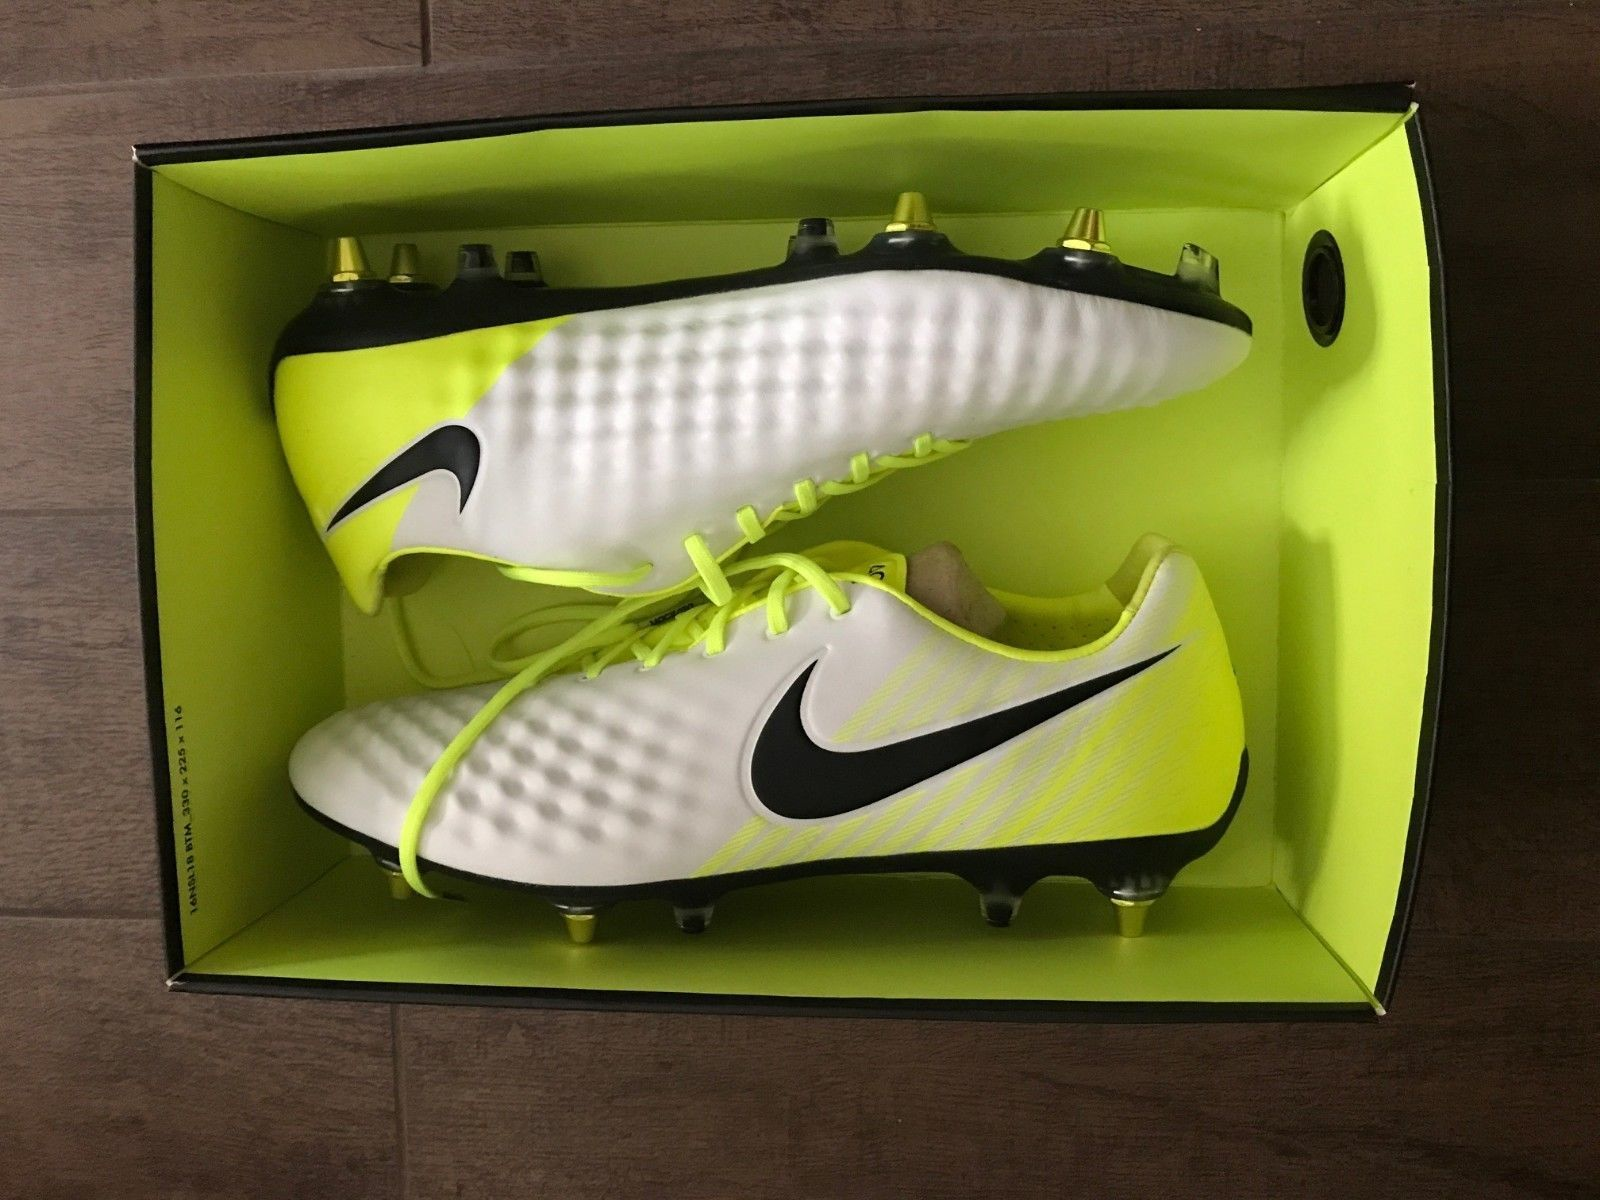 9c80a93939fe 57. 57. Previous. NIKE MAGISTA OPUS II SG-PRO AC WHITE BLACK VOLT WOLF GREY  889254 108 US · NIKE MAGISTA OPUS ...